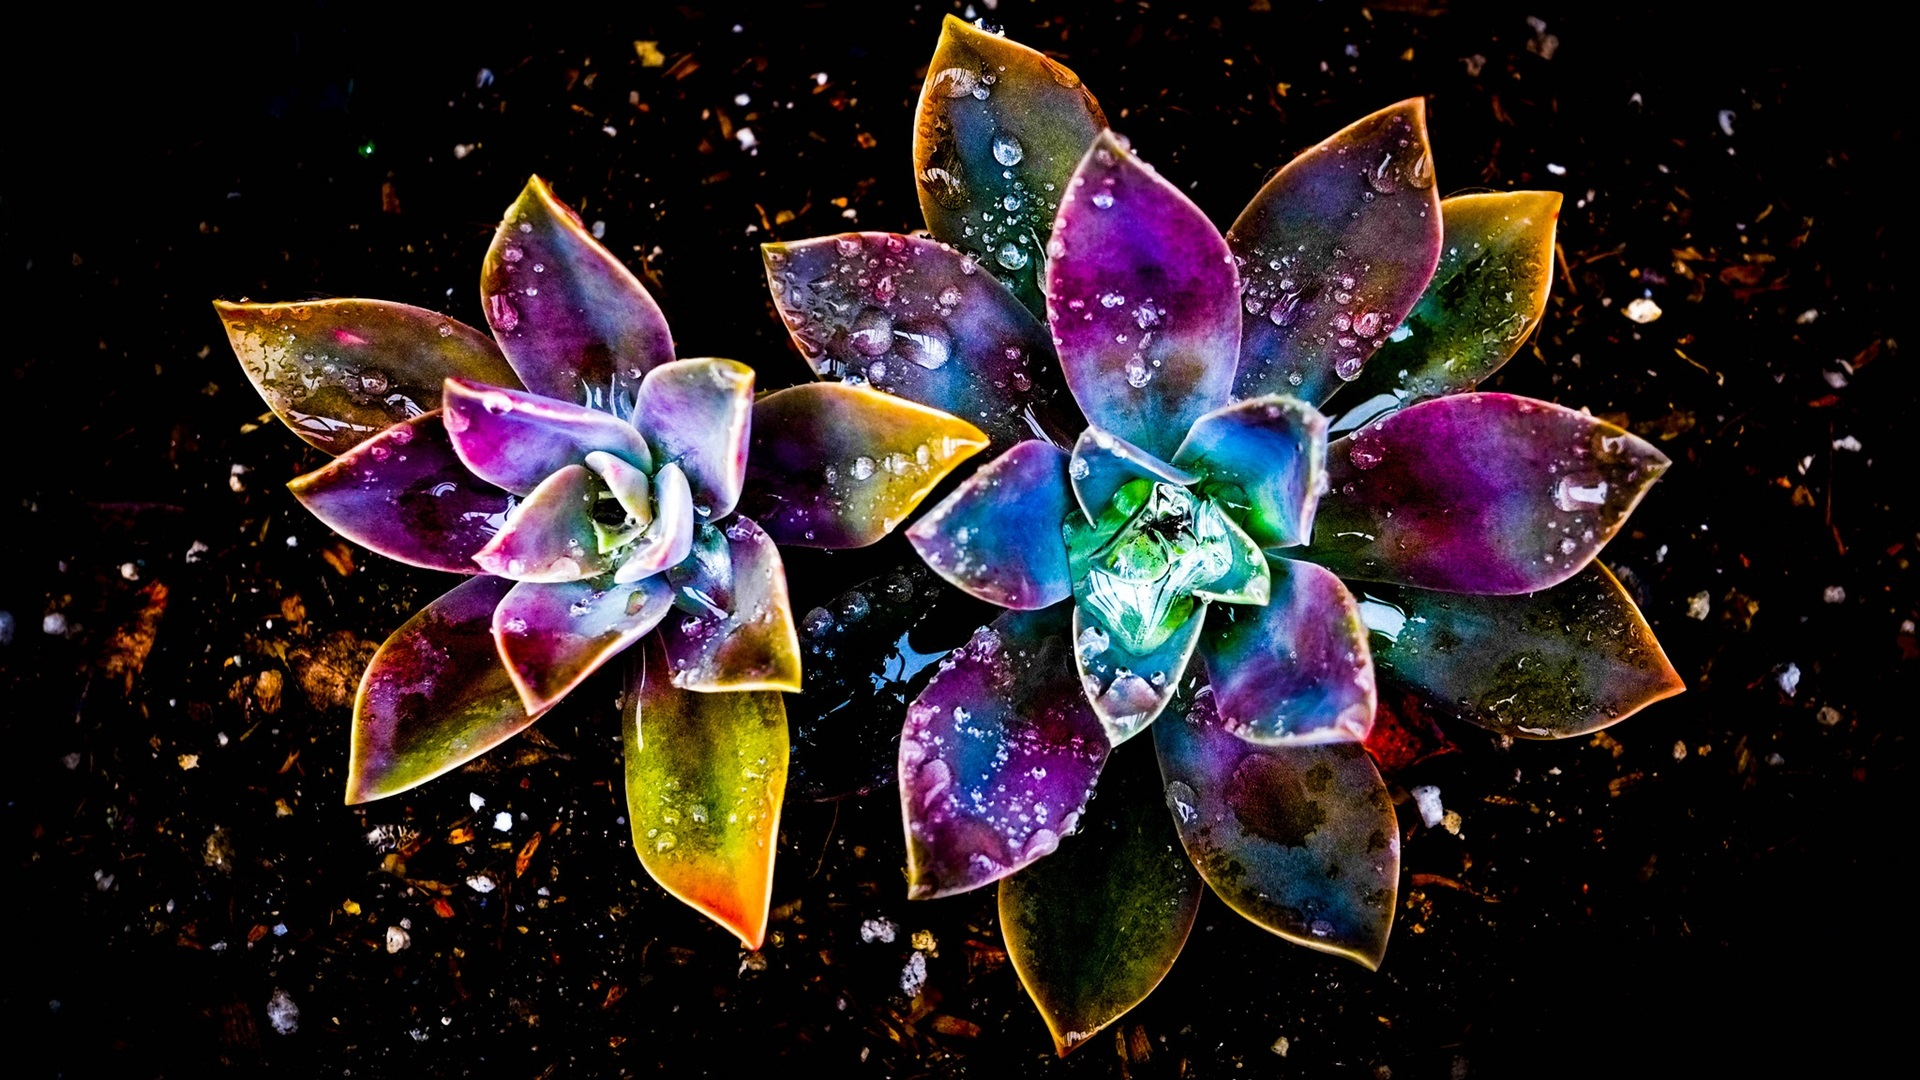 Wallpaper Colorful Flowers Abstract Water Drop 1920x1200